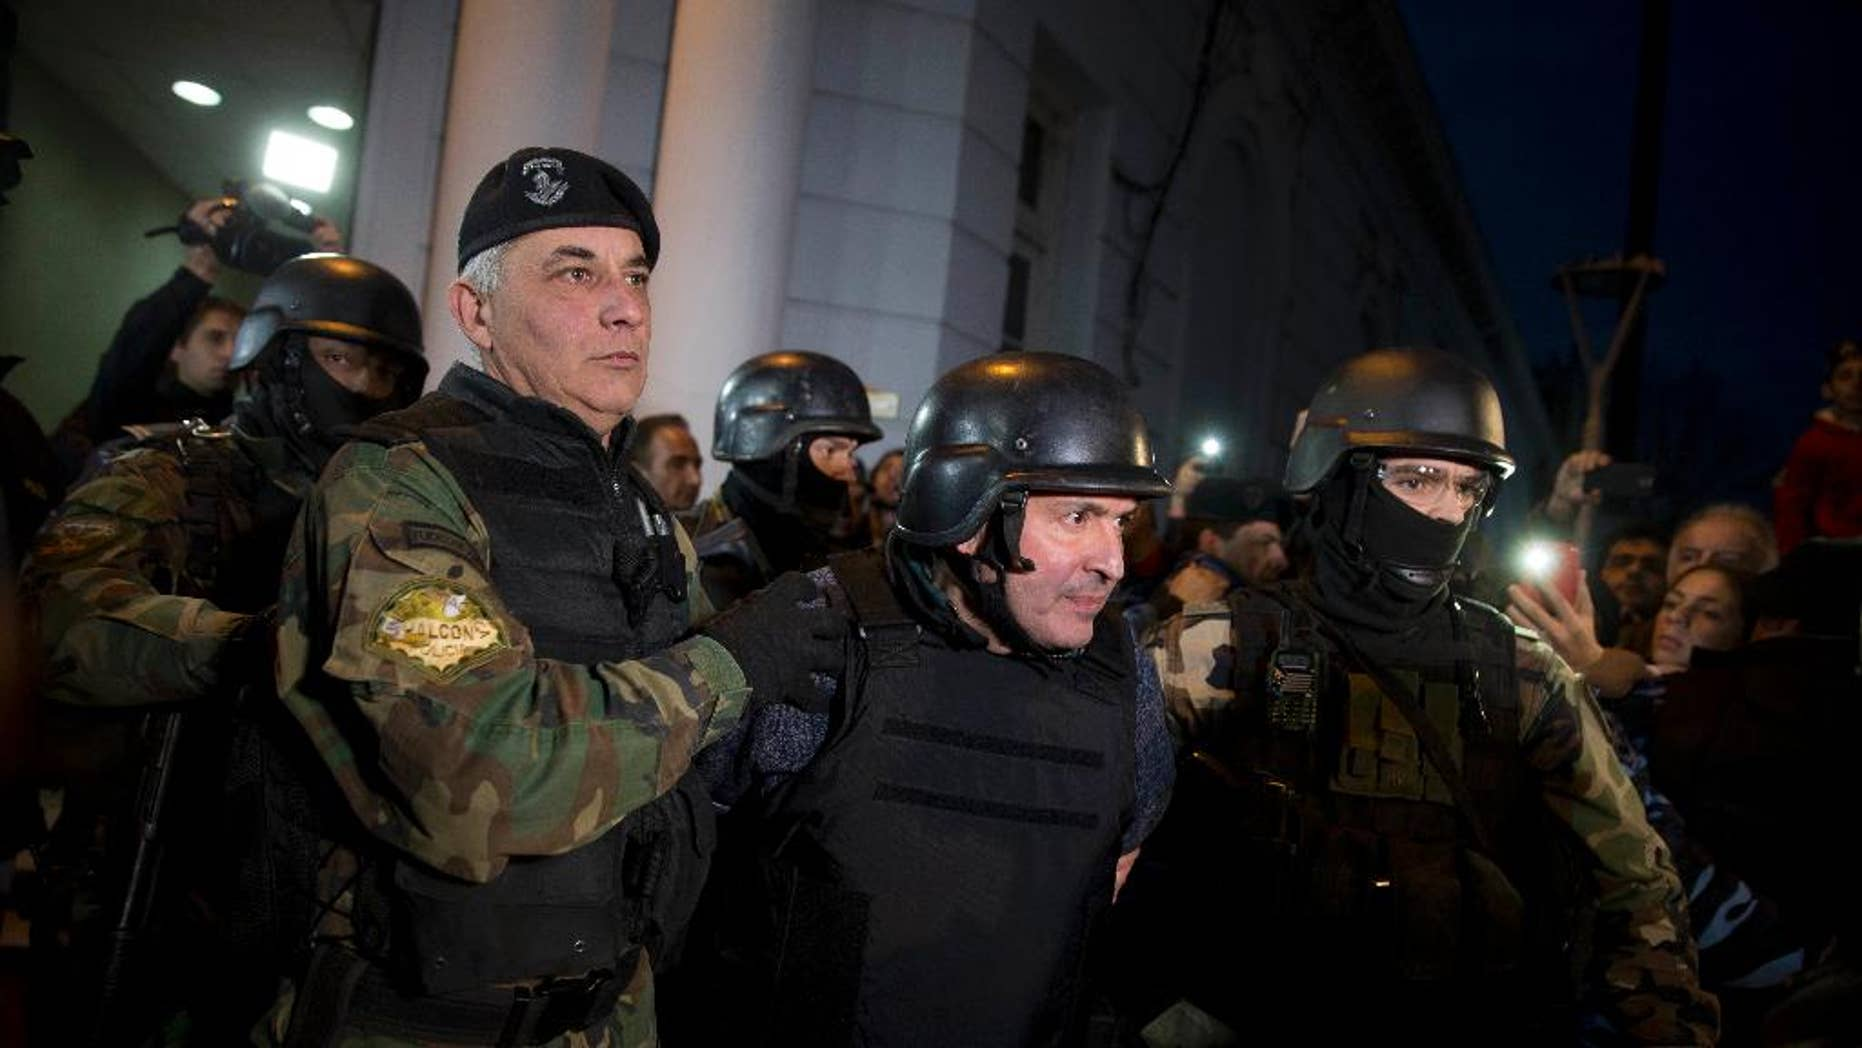 Former Public Works Secretary Jose Lopez, center, is escort by police outside the police station in the outskirts of Buenos Aires, Argentina, Tuesday, June 14, 2016. Lopez, an official in the former government of President Fernandez was arrested on Tuesday while trying to hide millions in cash and jewels in a monastery, captivating Argentina in what the cabinet chief said seems more like the plot of a Hollywood movie. (AP Photo/Natacha Pisarenko)